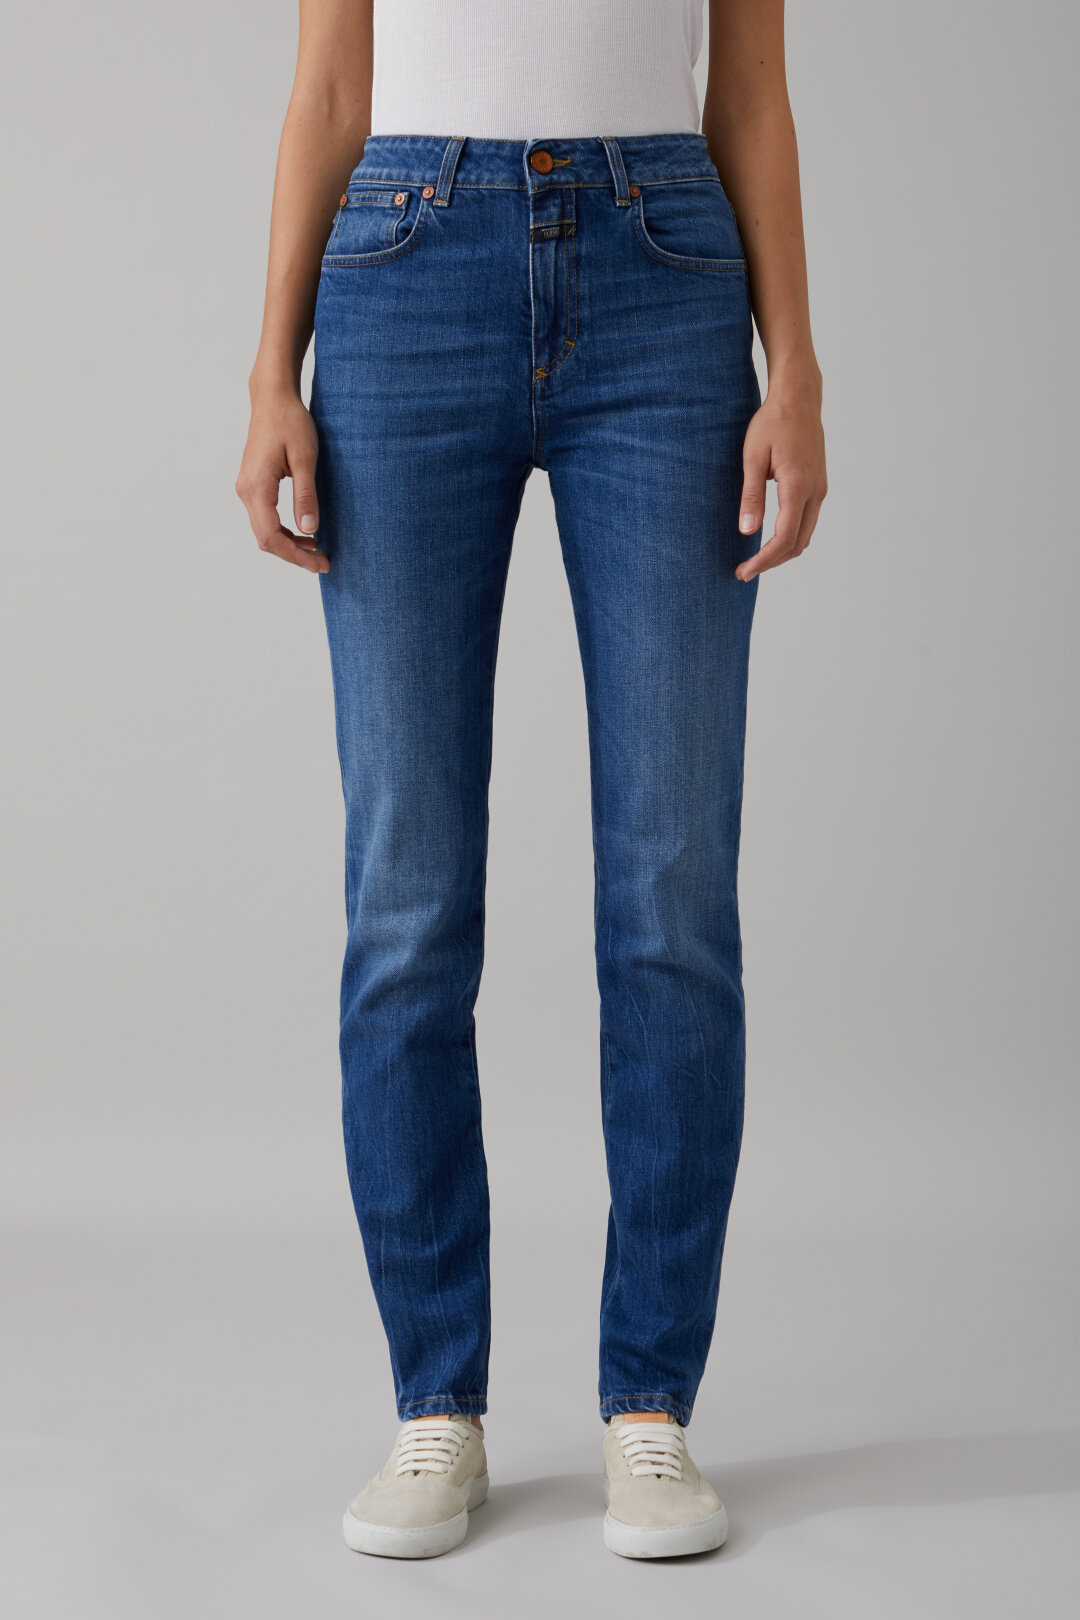 Britney Blue Stretch Denim